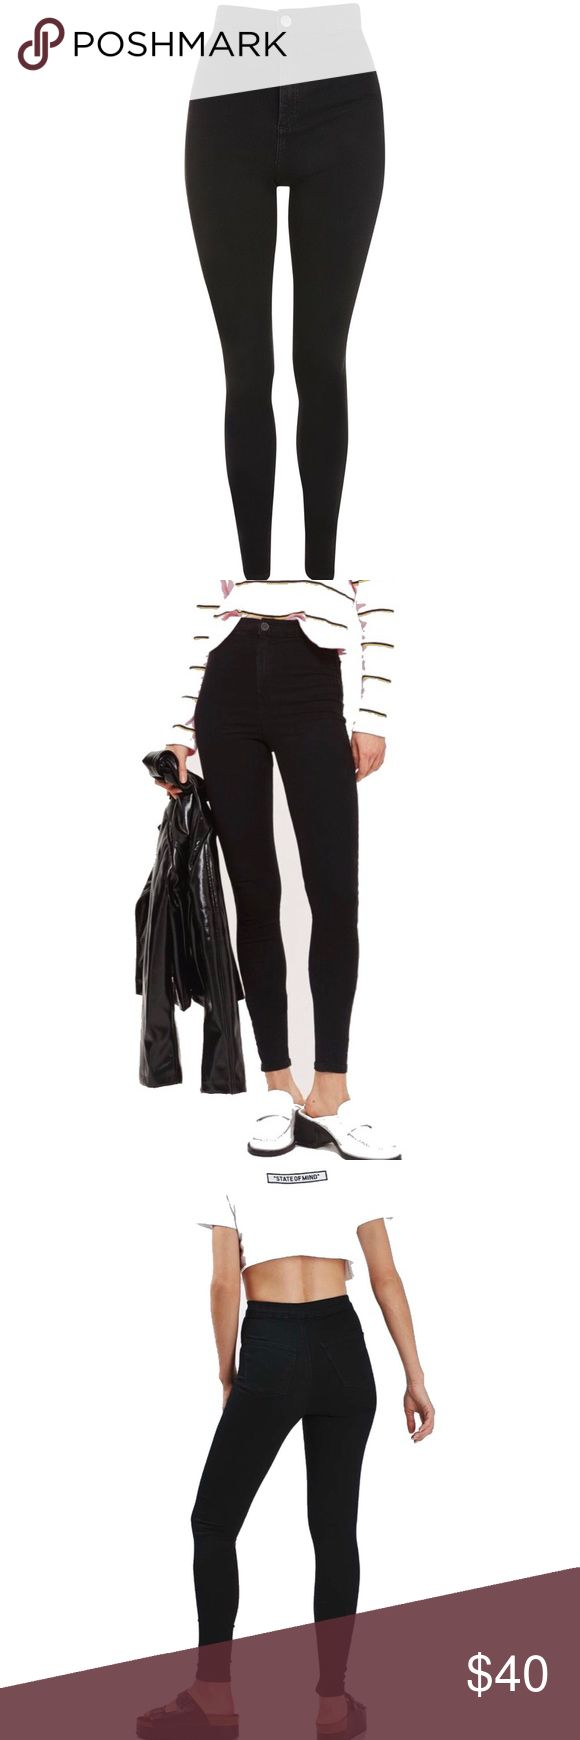 Topshop Black Joni Skinny Jeans Topshop Tall Joni Super High Waisted skinny jeans in black. W32 x L36 - listed size 31 since Joni jeans run a size small. Brand new without tags. 68% cotton, 28% polyester, 4% elastane.  Price is firm, all offers will be declined ~ Topshop Jeans Skinny